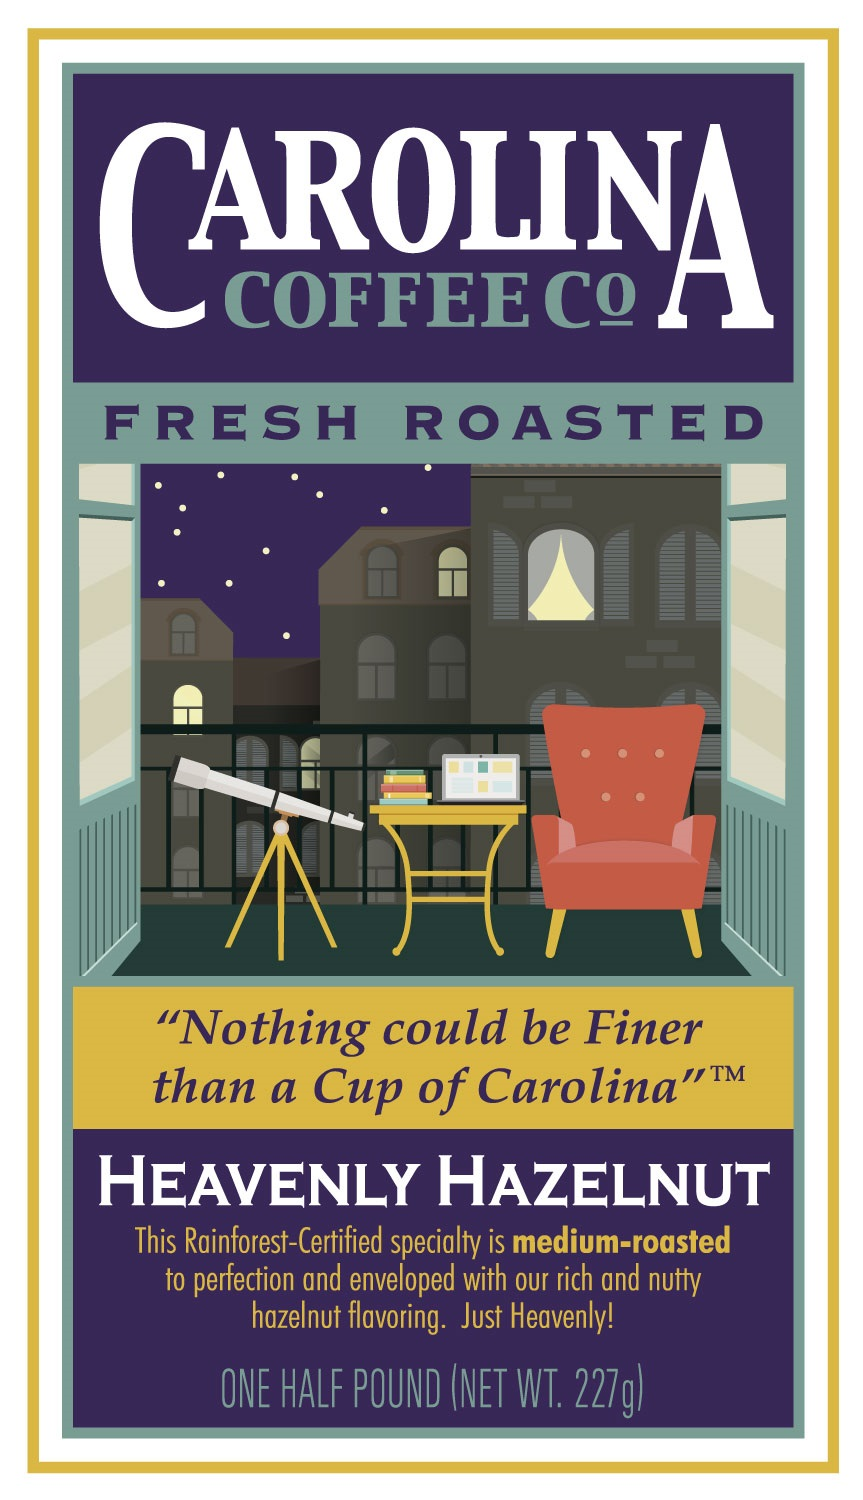 Carolina Coffee Heavenly Hazelnut